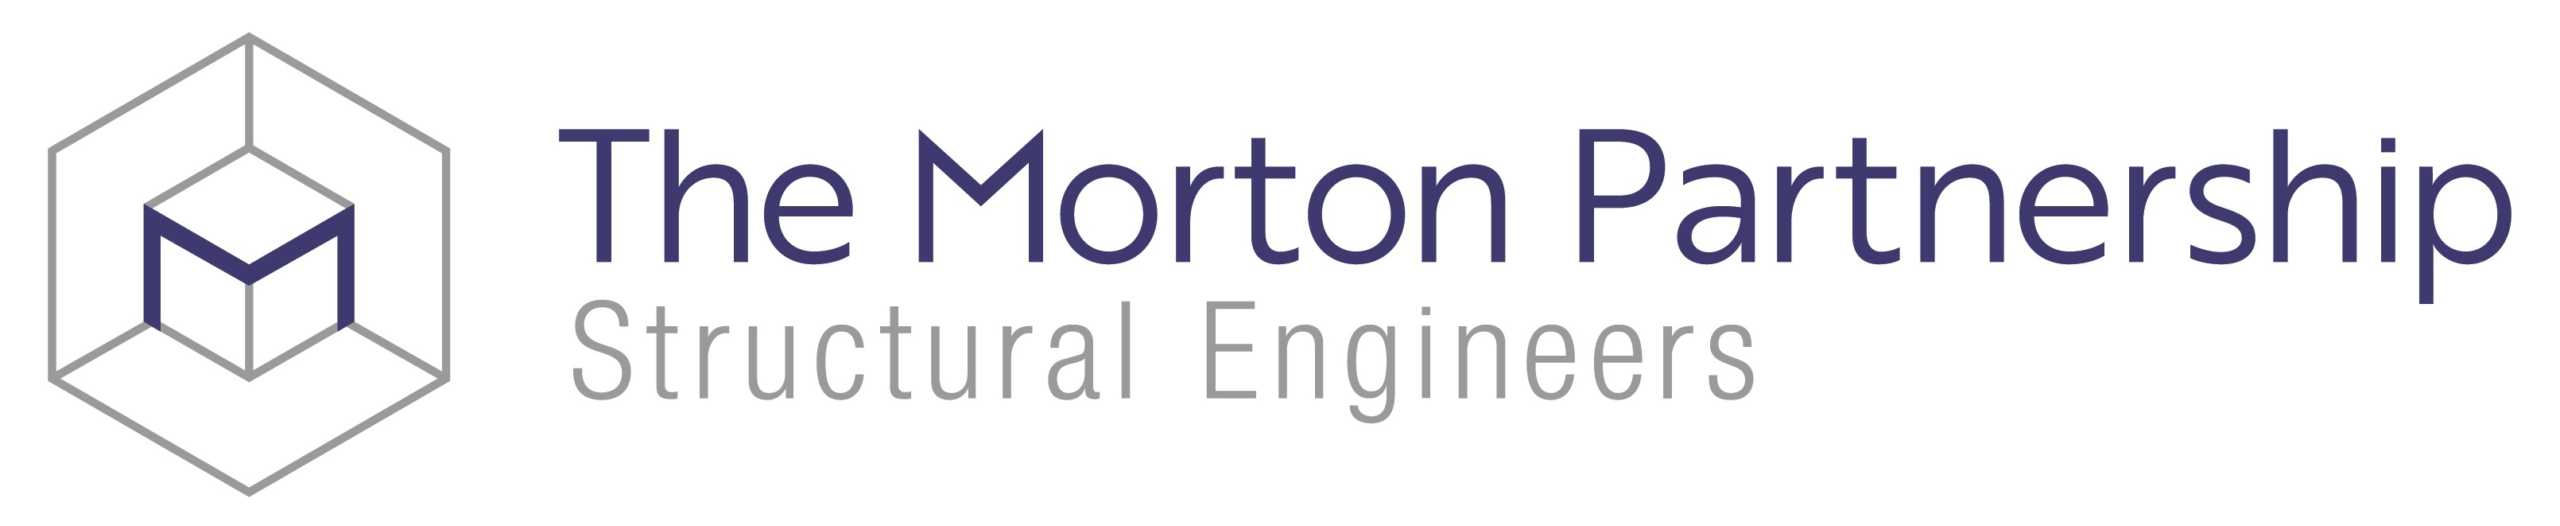 The Morton Partnership - Structural Engineers